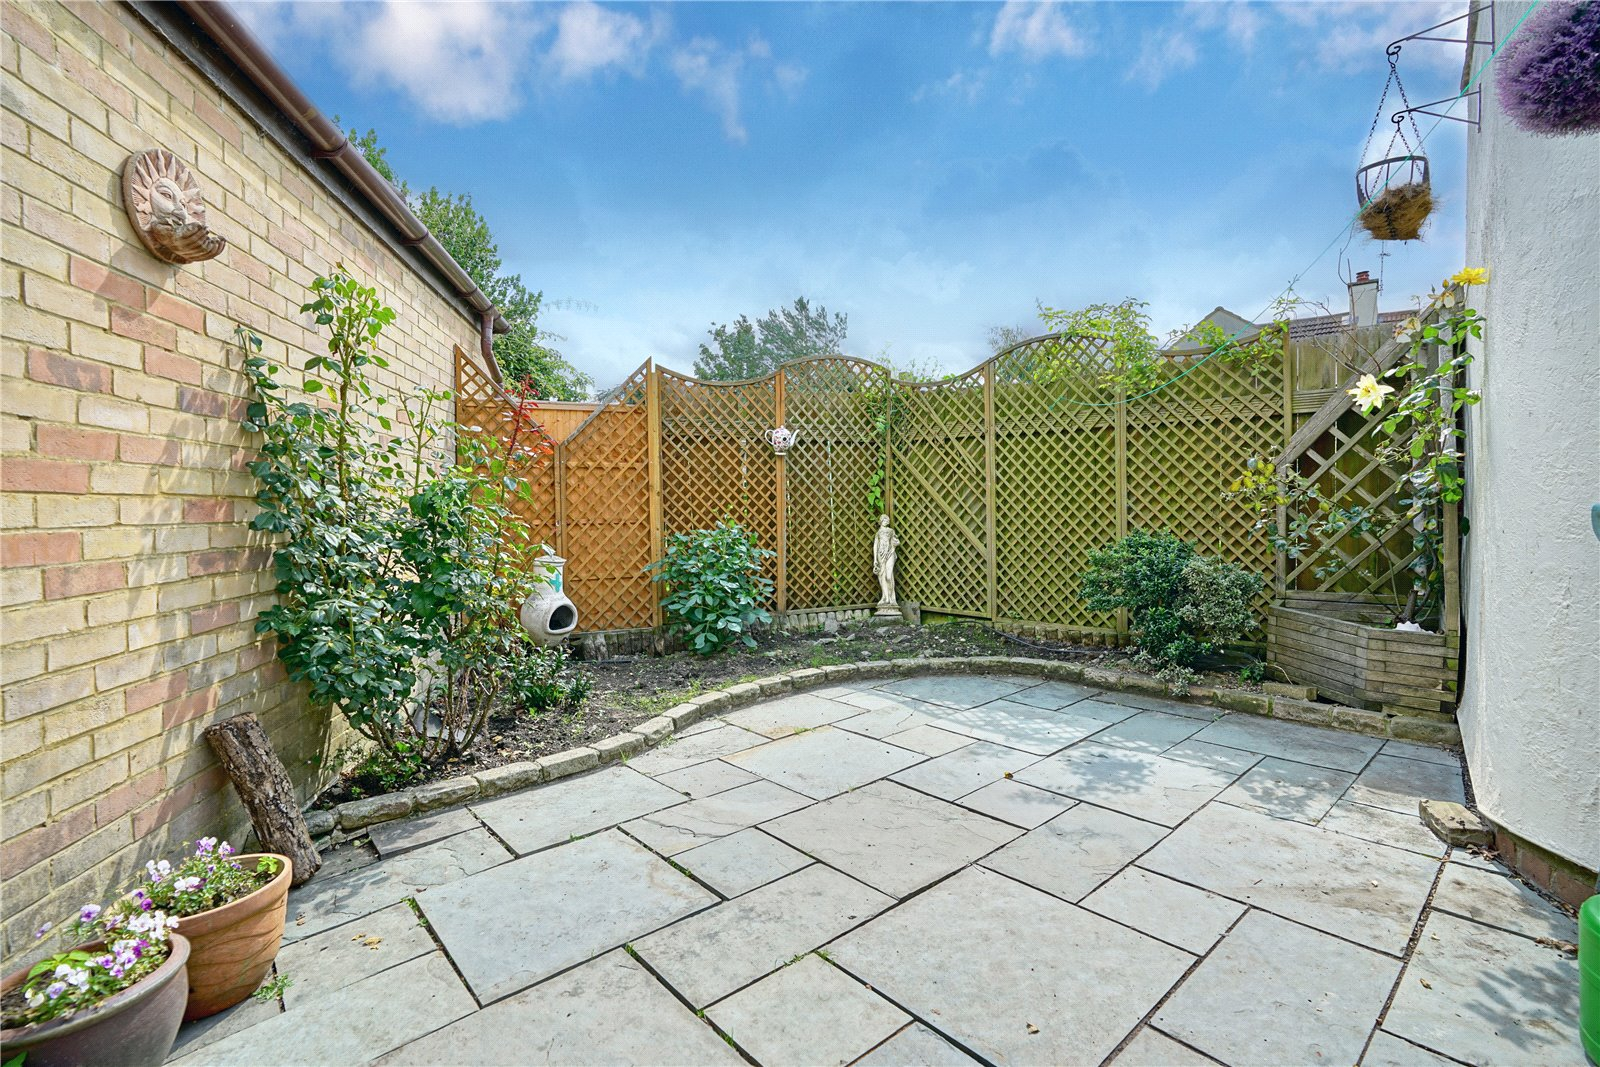 2 bed house for sale in Offord D'arcy  - Property Image 2